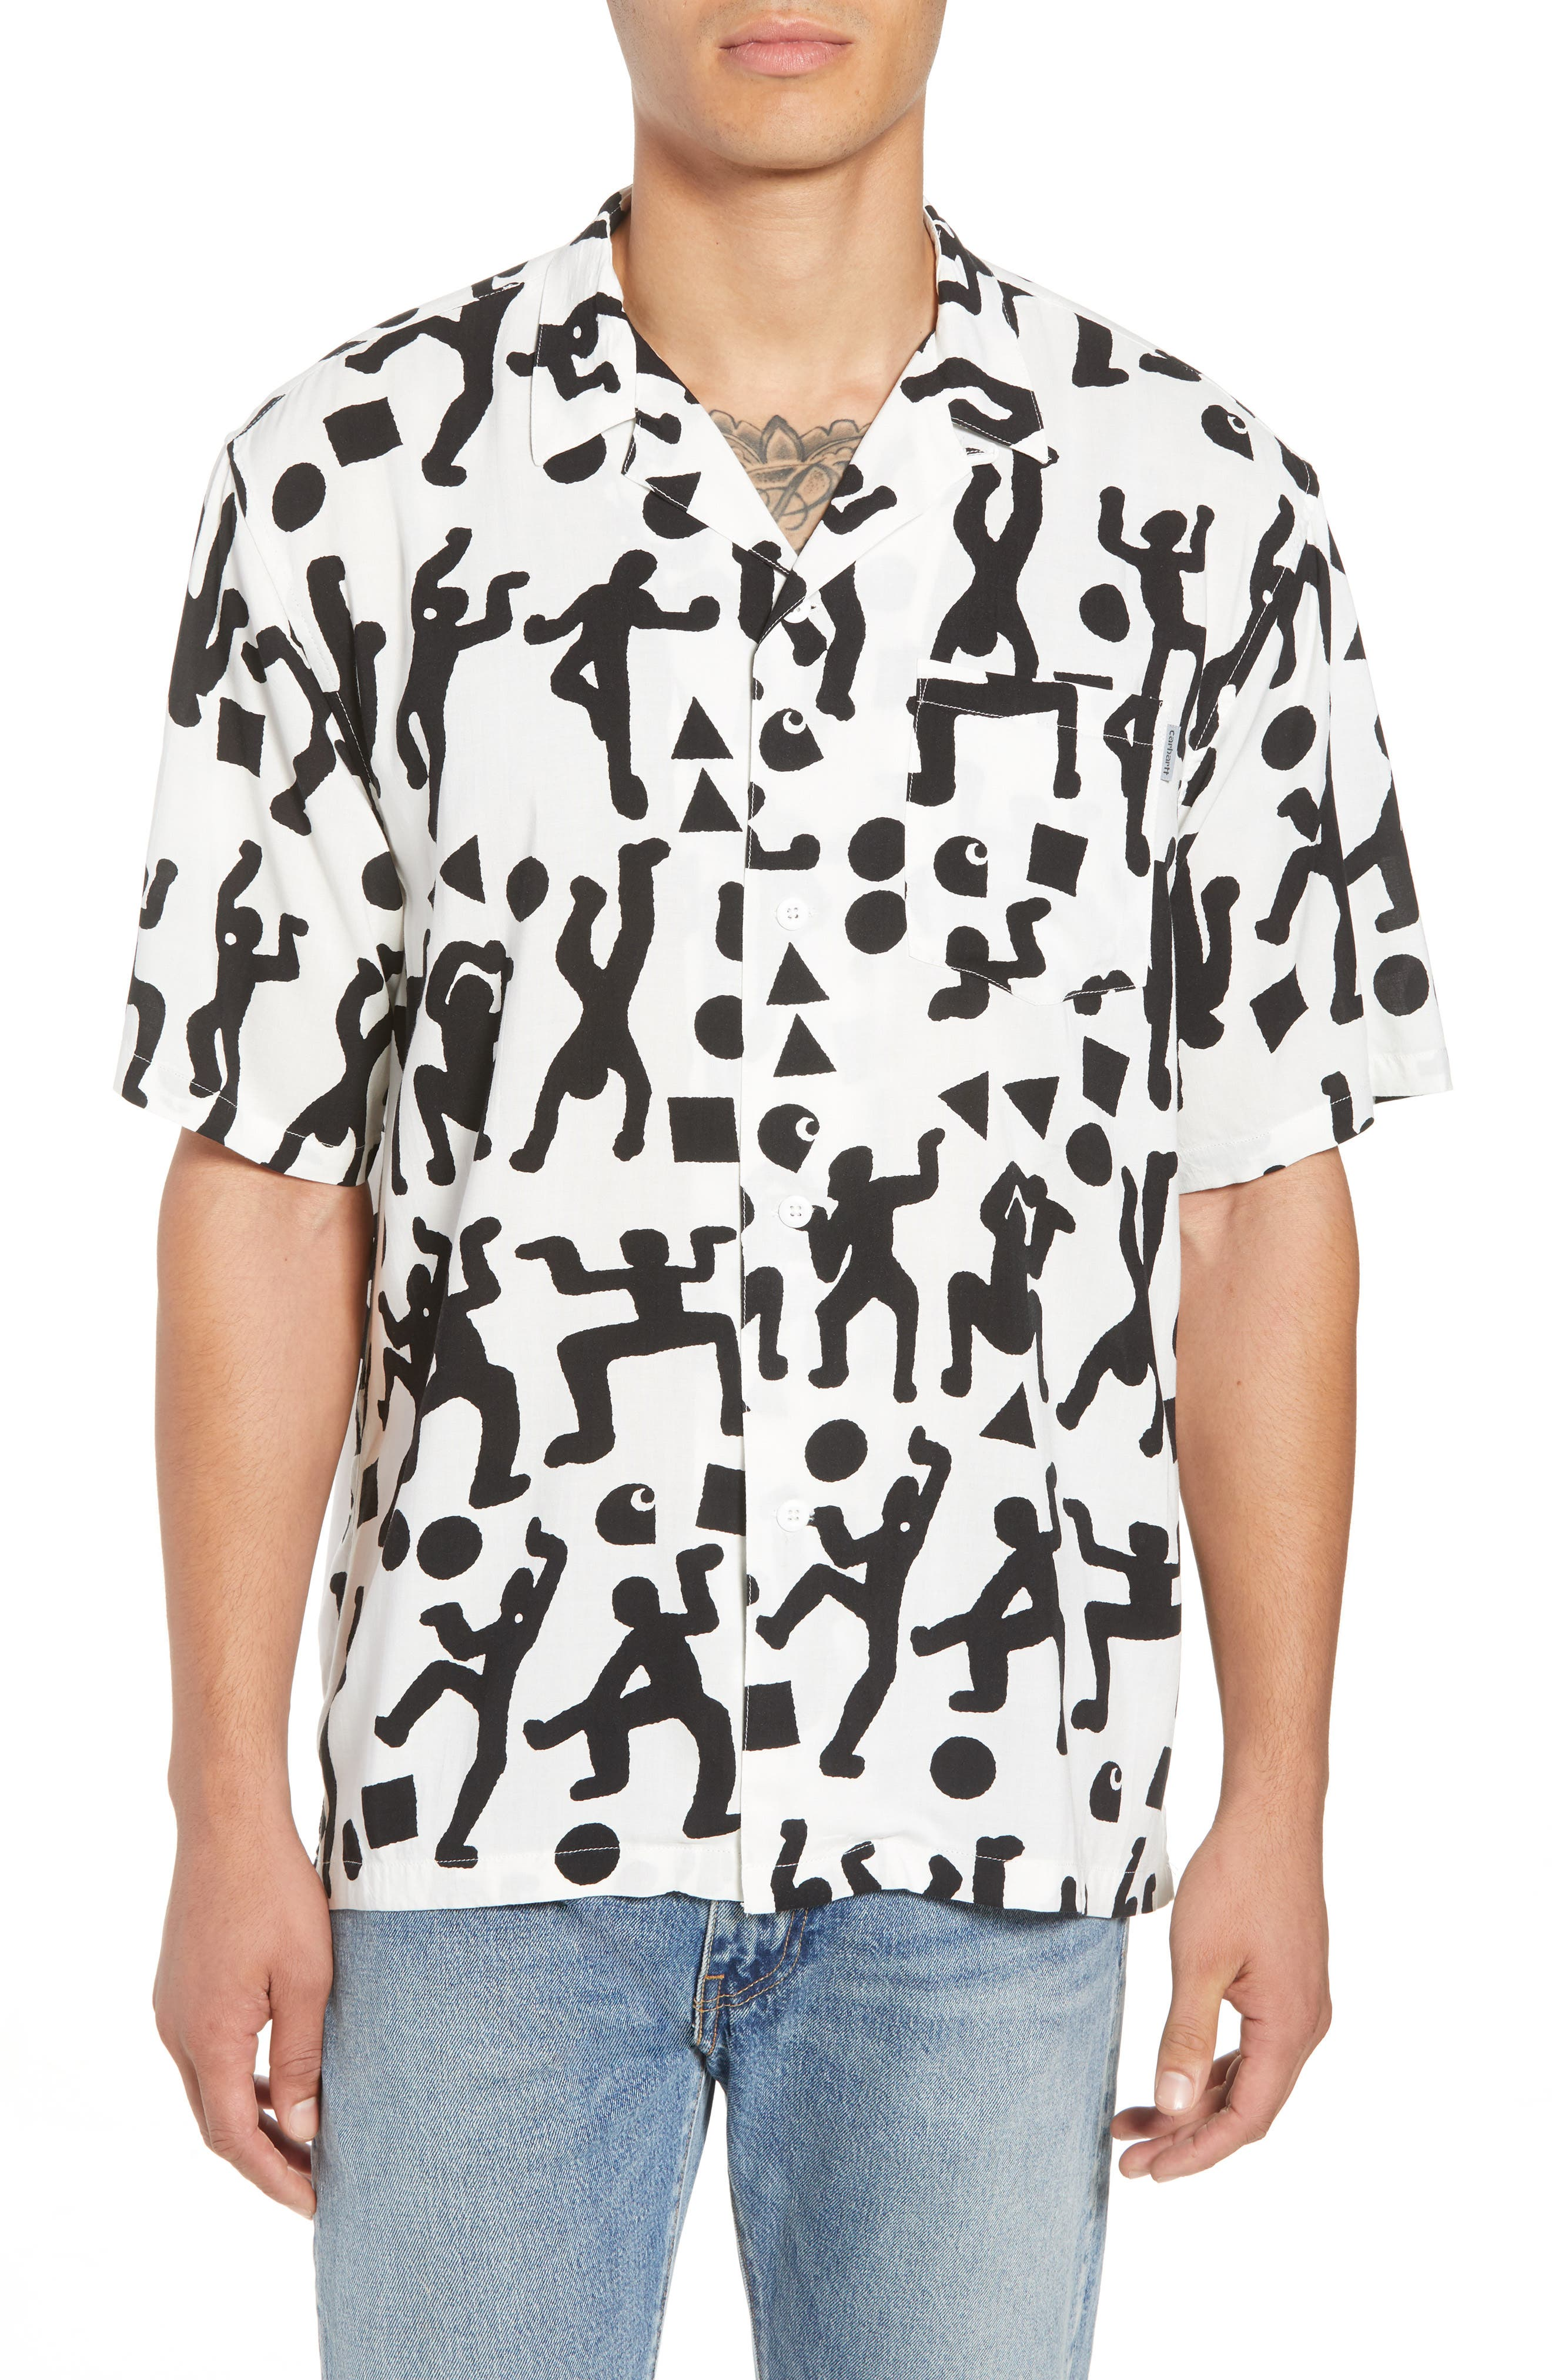 World Party Woven Shirt,                         Main,                         color, World Party Print Black/ White